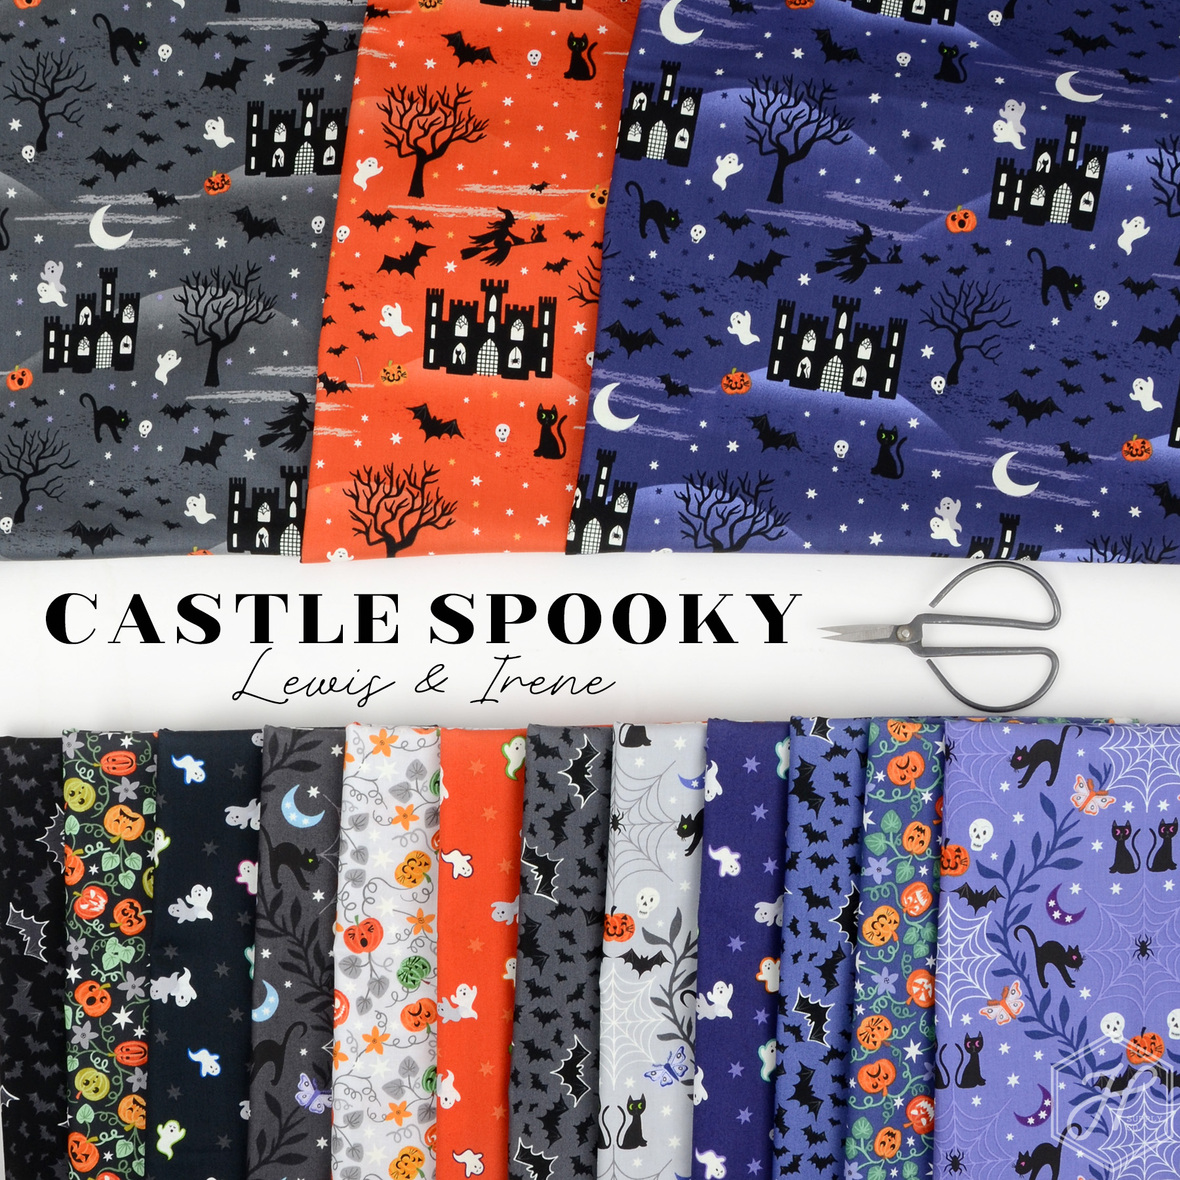 Castle Spooky Fabric Lewis and Irene Halloween at Hawthorne Supply Co